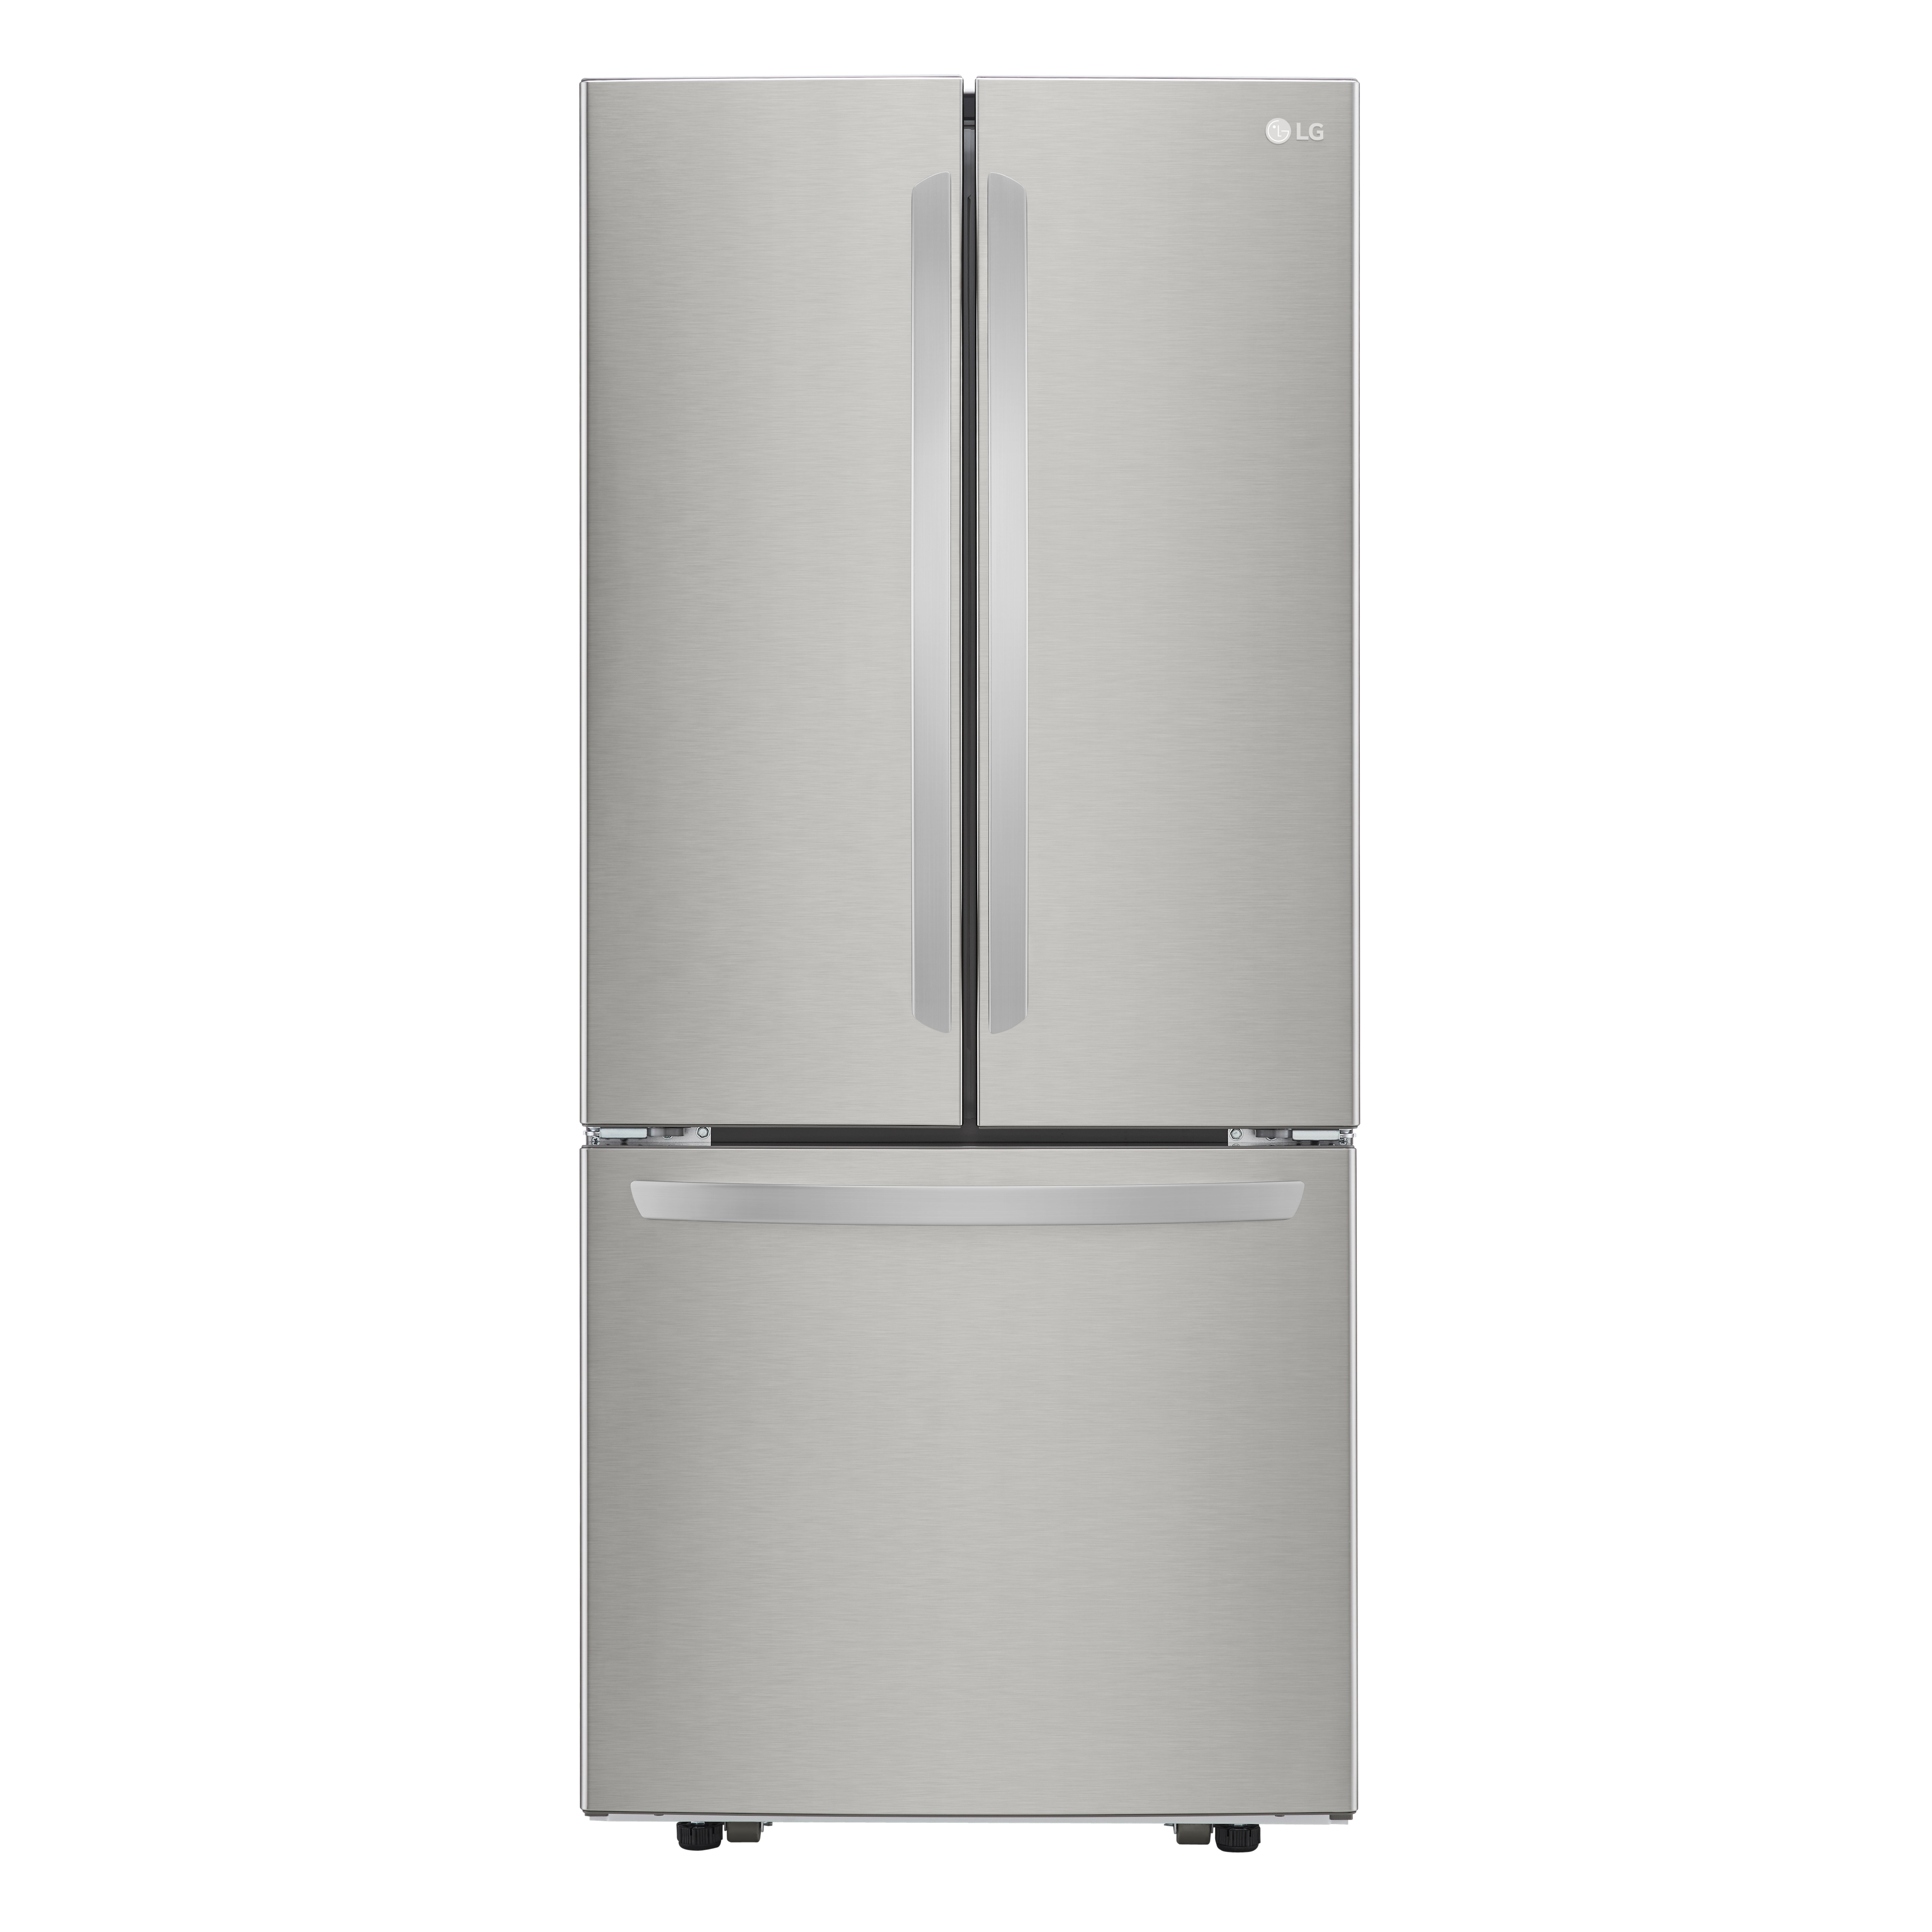 LG Fridge LRFNS2200S in Stainless Steel color showcased by Corbeil Electro Store